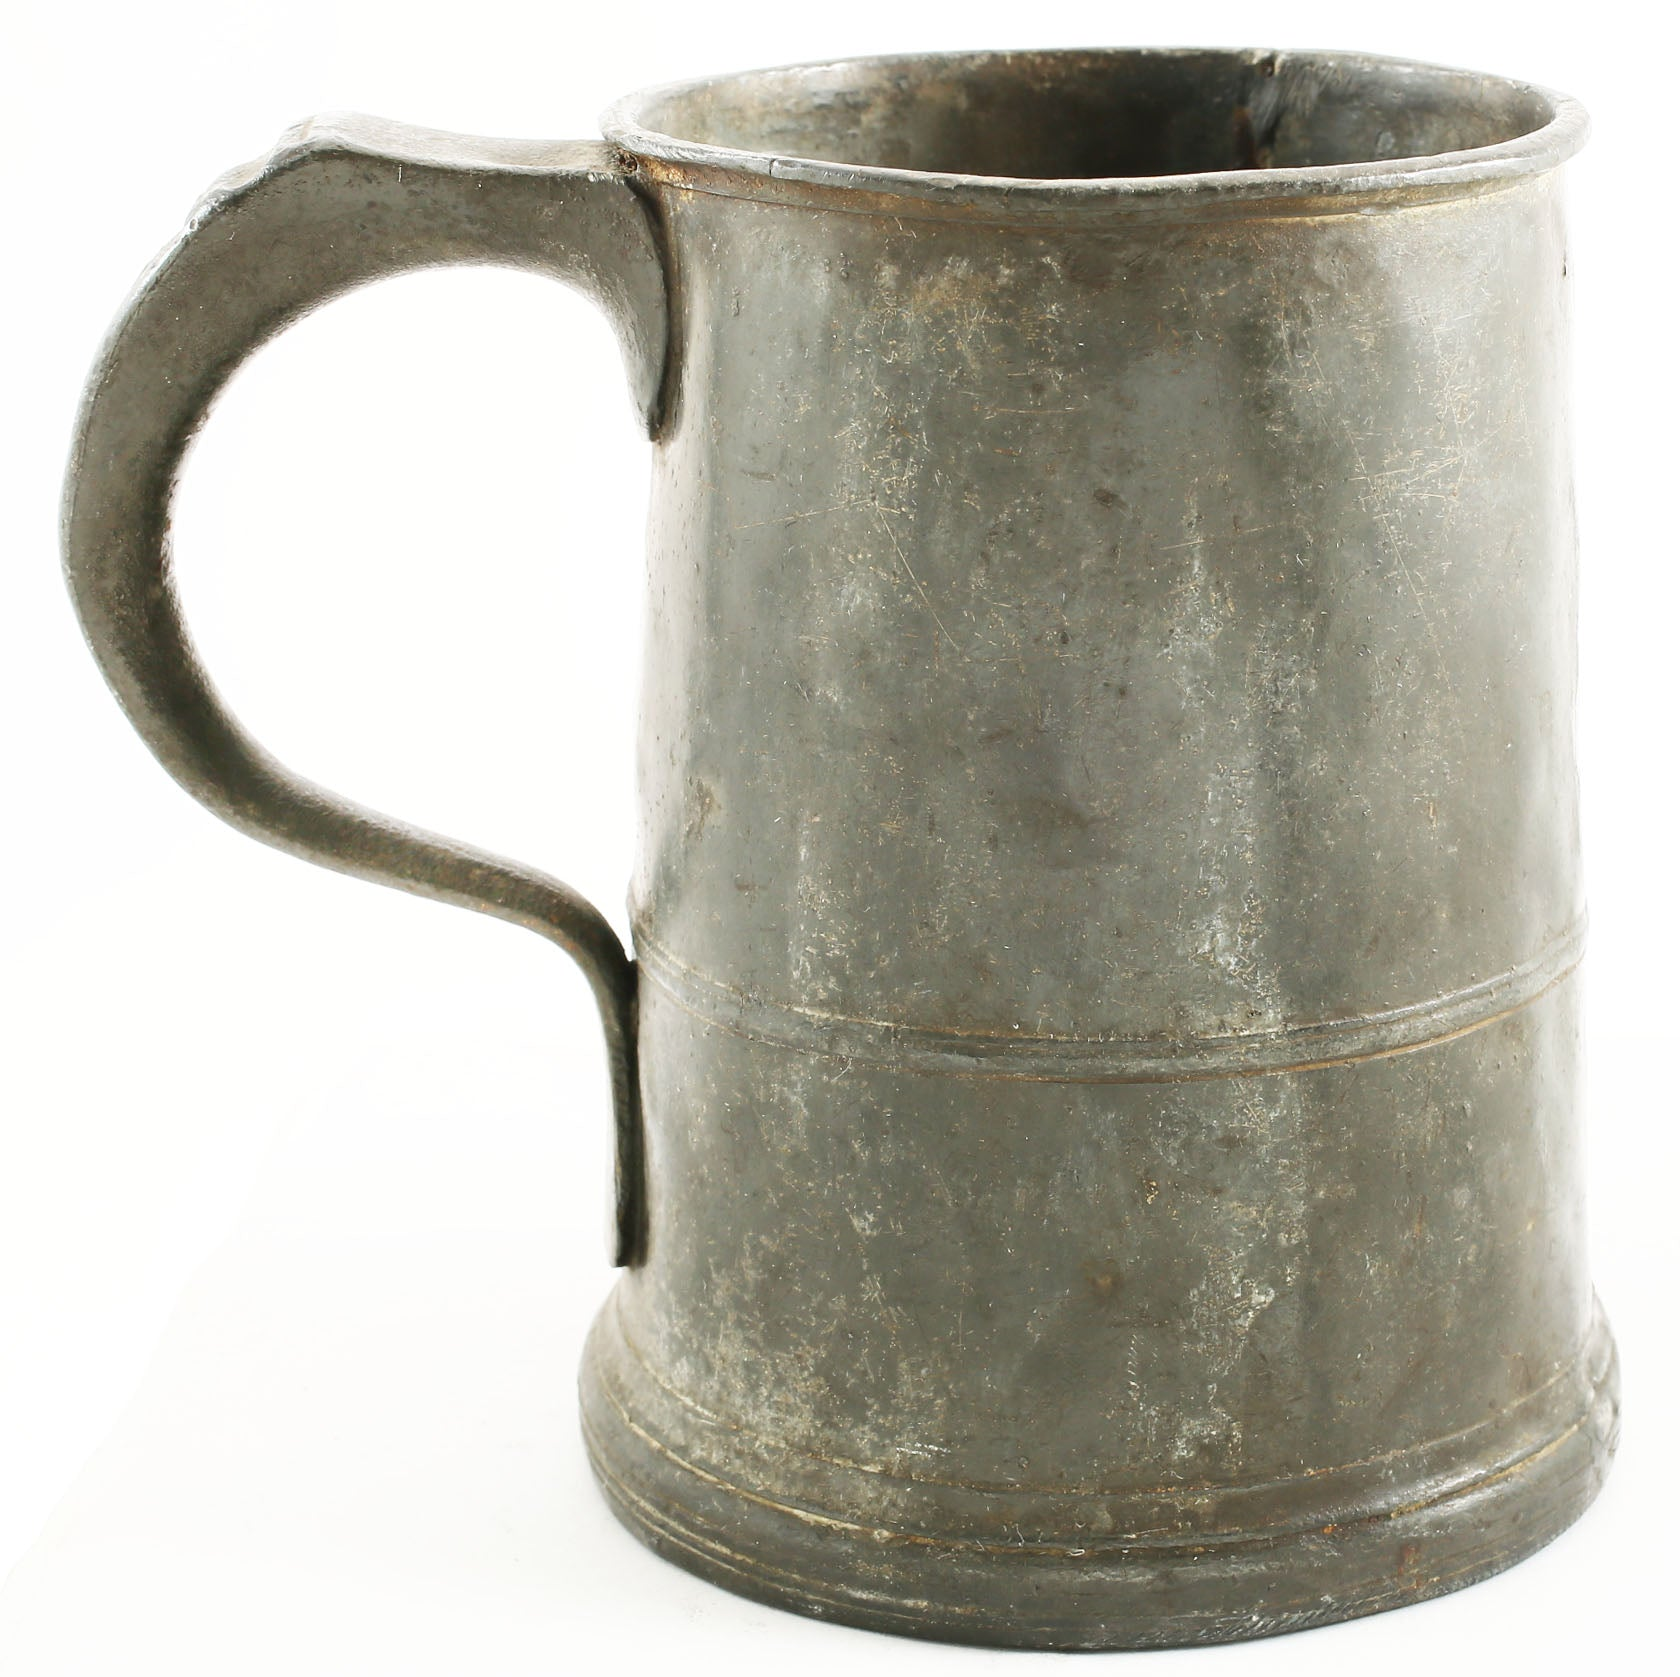 FROM THE MOVIES! VICTORIAN PEWTER PUB MUG